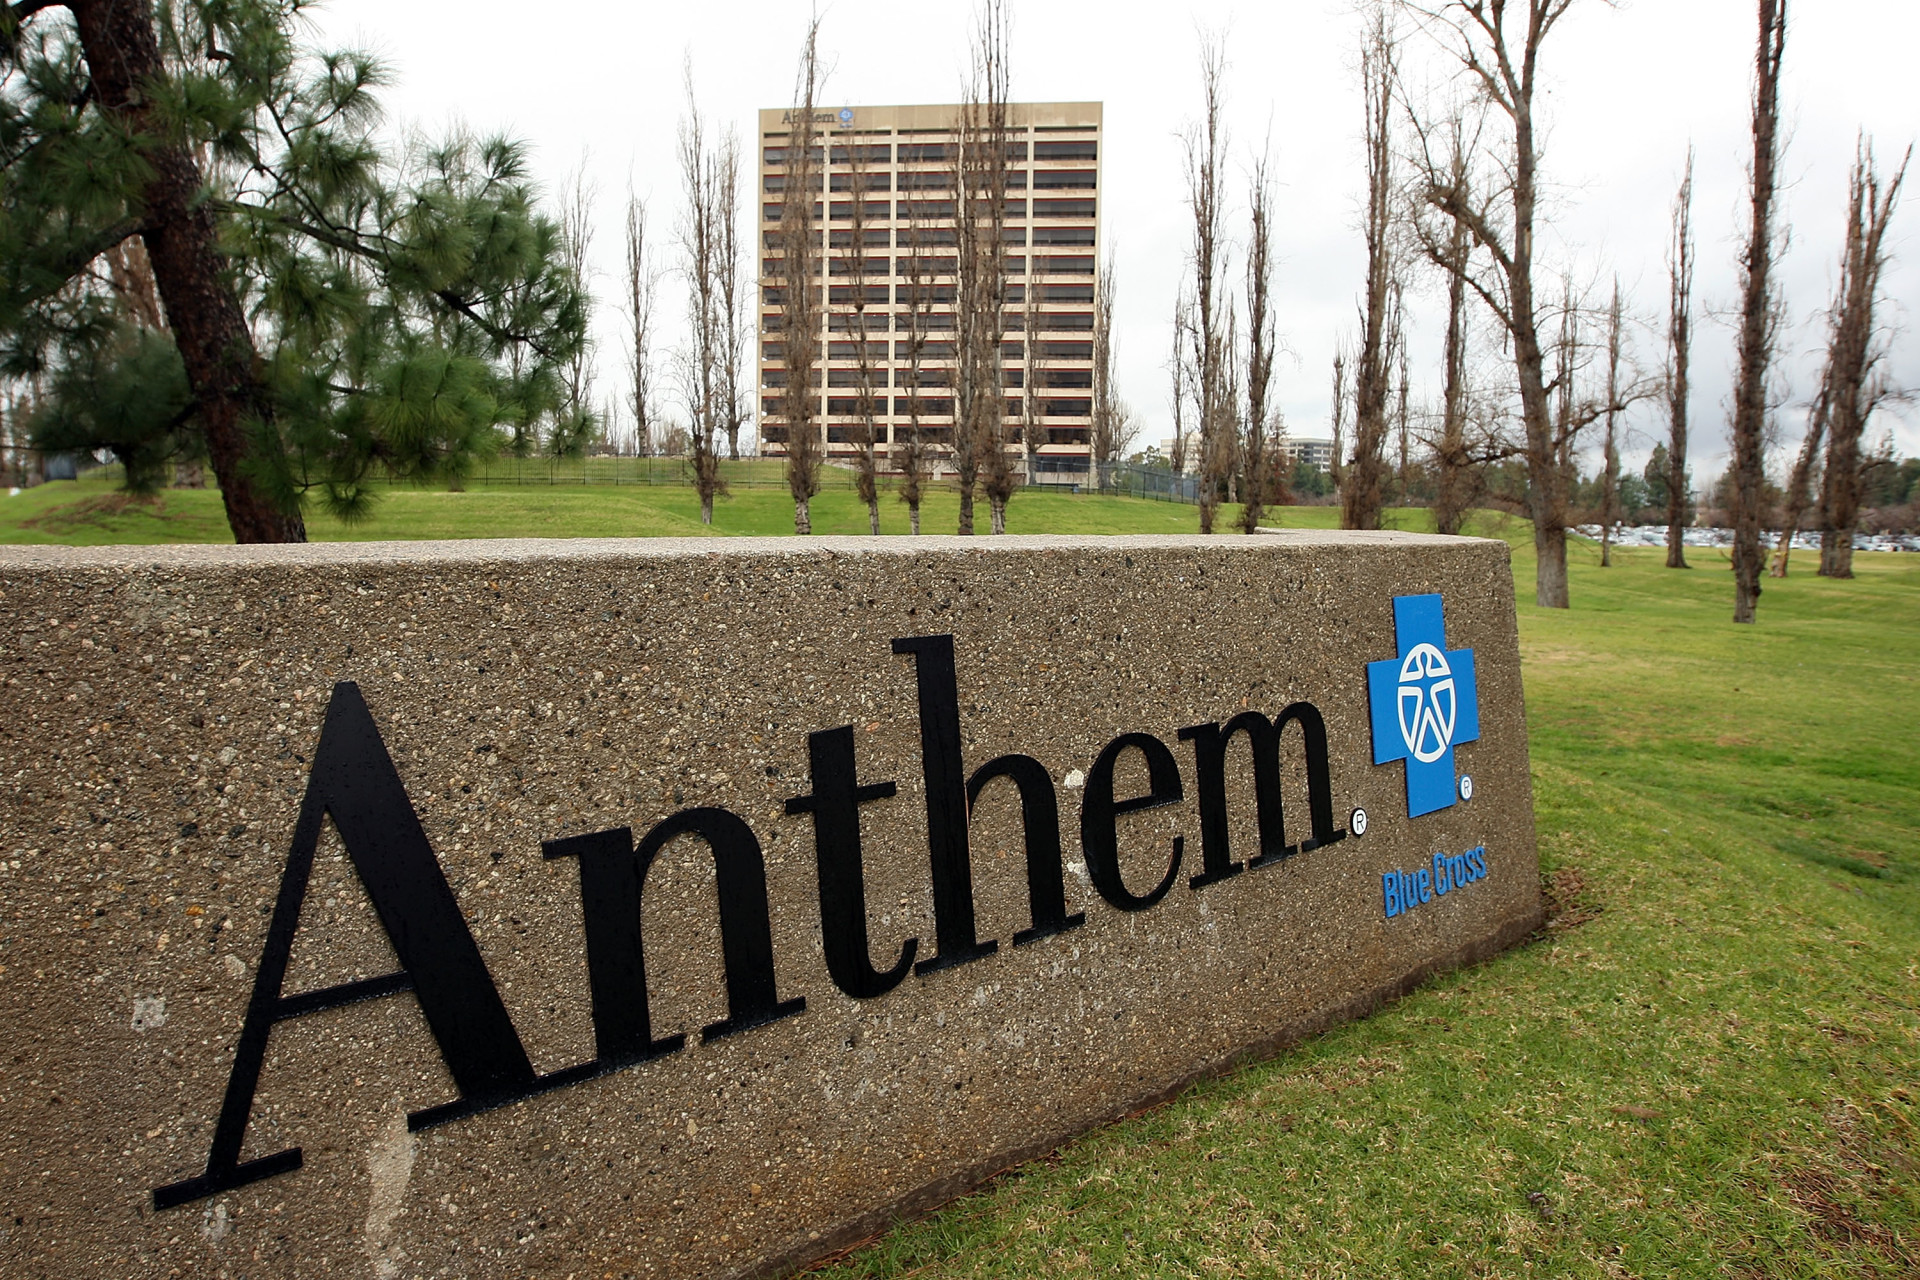 The Anthem Blue Cross headquarters in Woodland Hills, CA.